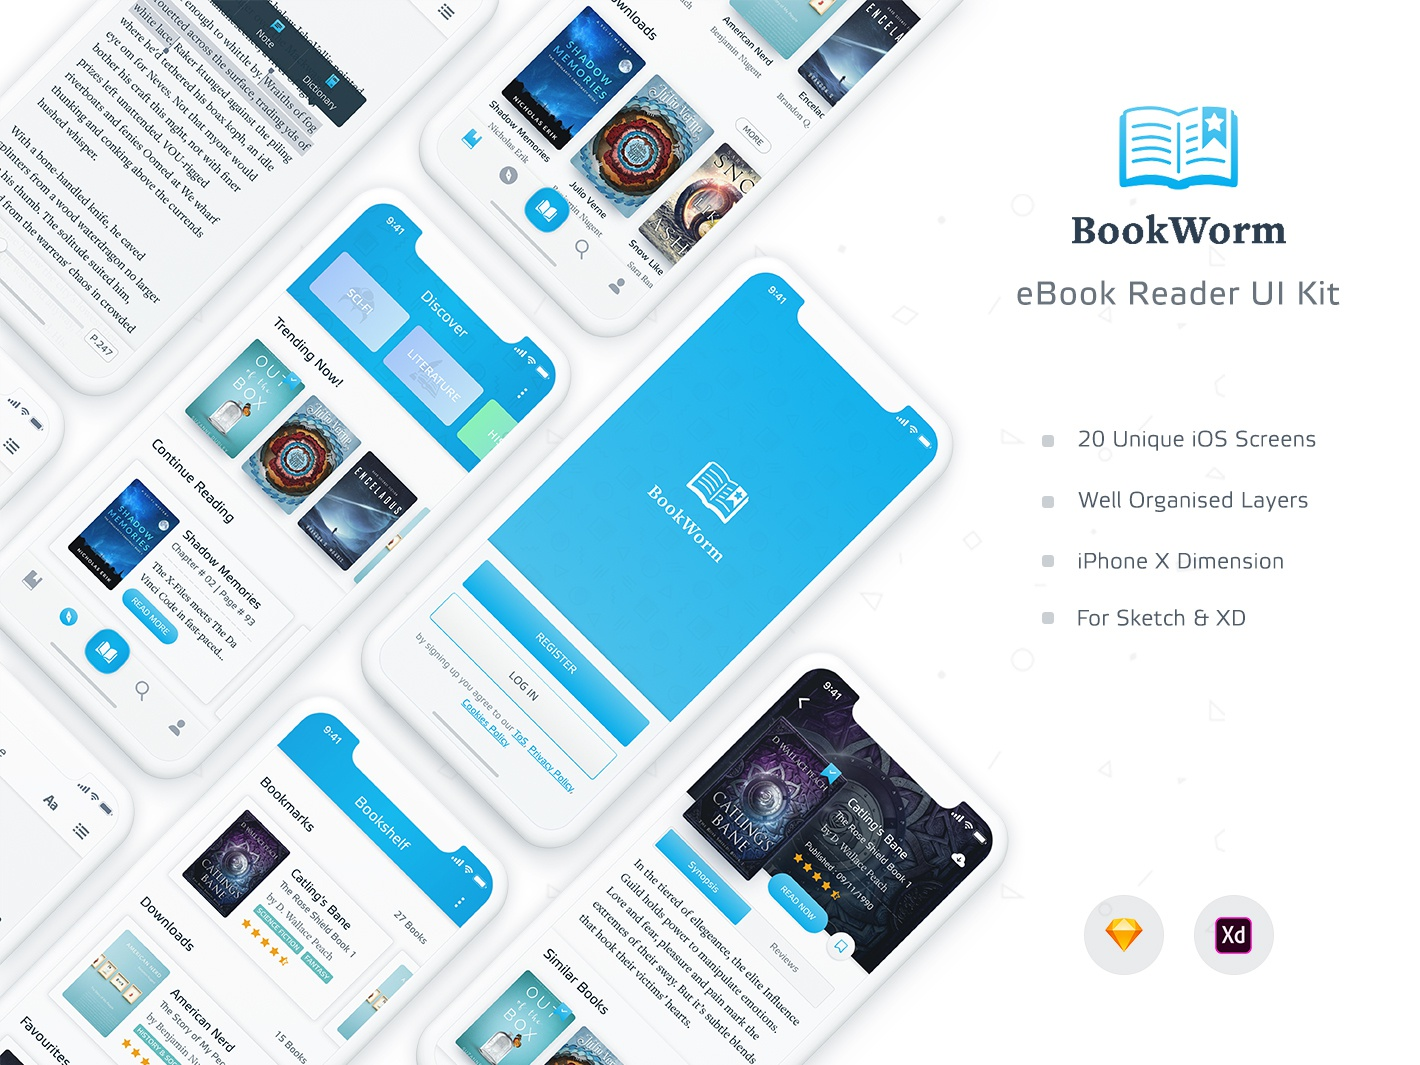 BookWorm eBook Reader UI Kit by Mousecrafted on Dribbble